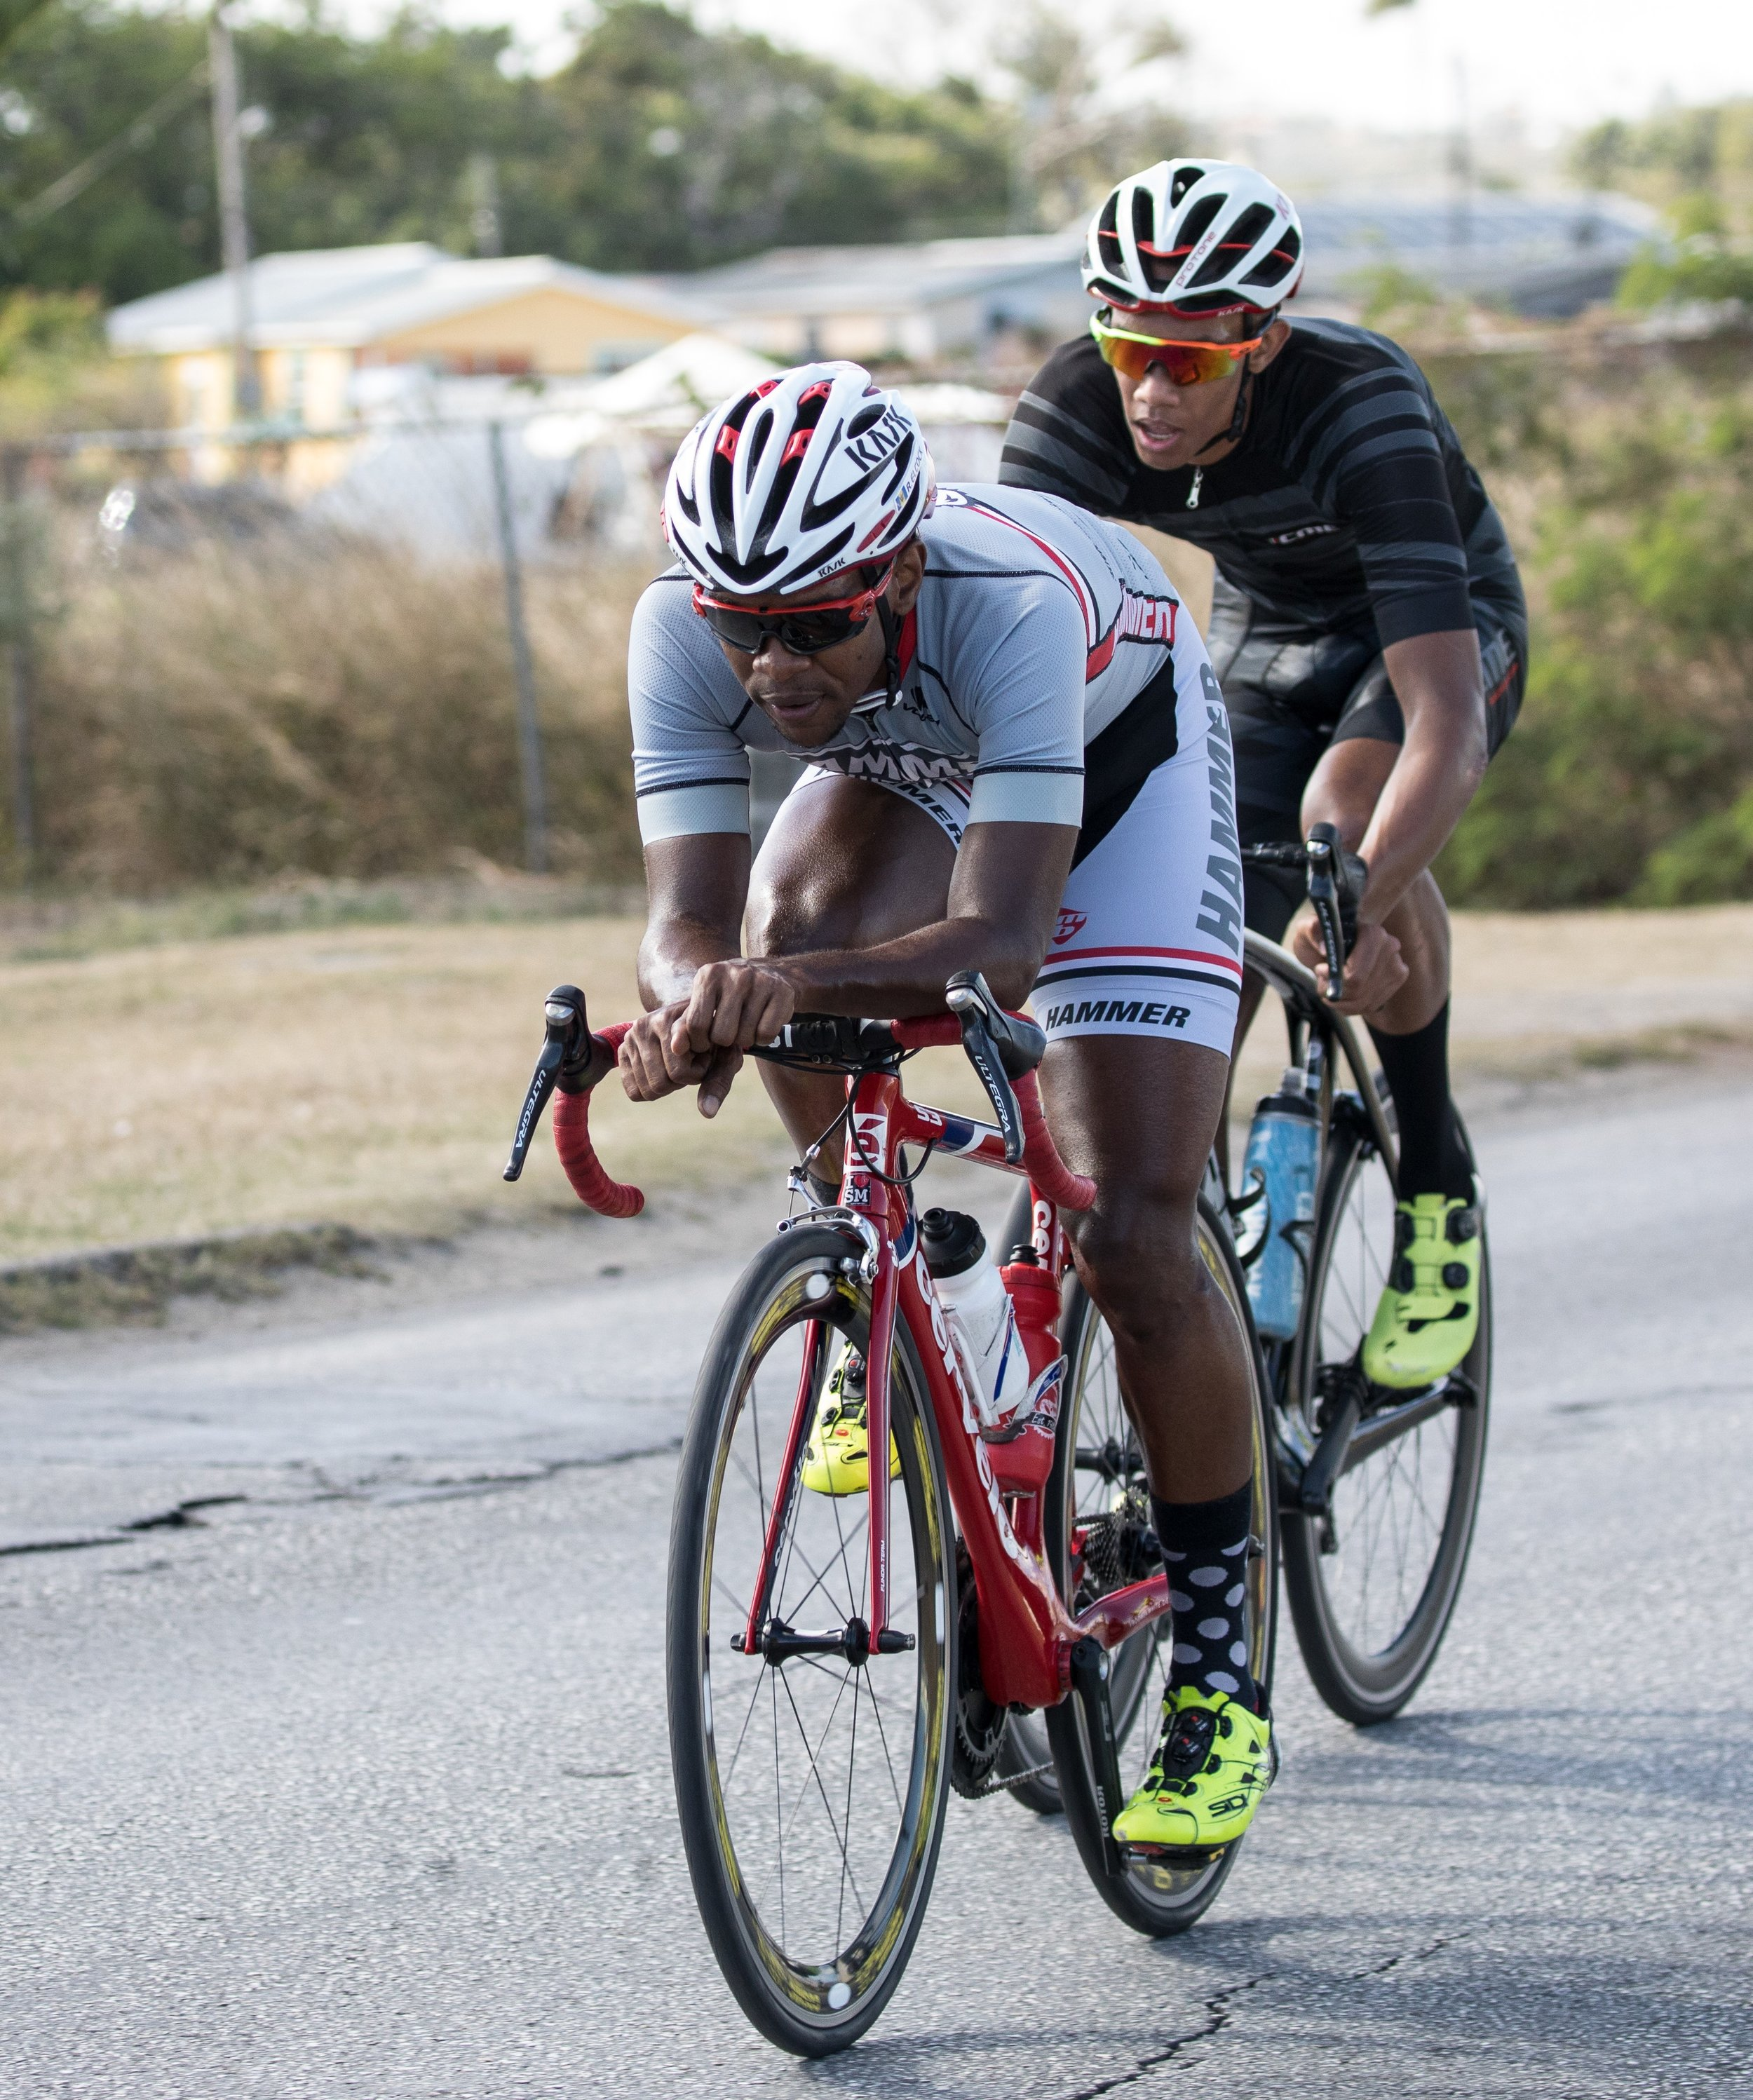 Russell Elcock and Dominic Howard, respective first and second place winners of the Seniors race category. Photo credit: Barbados Cycling Union